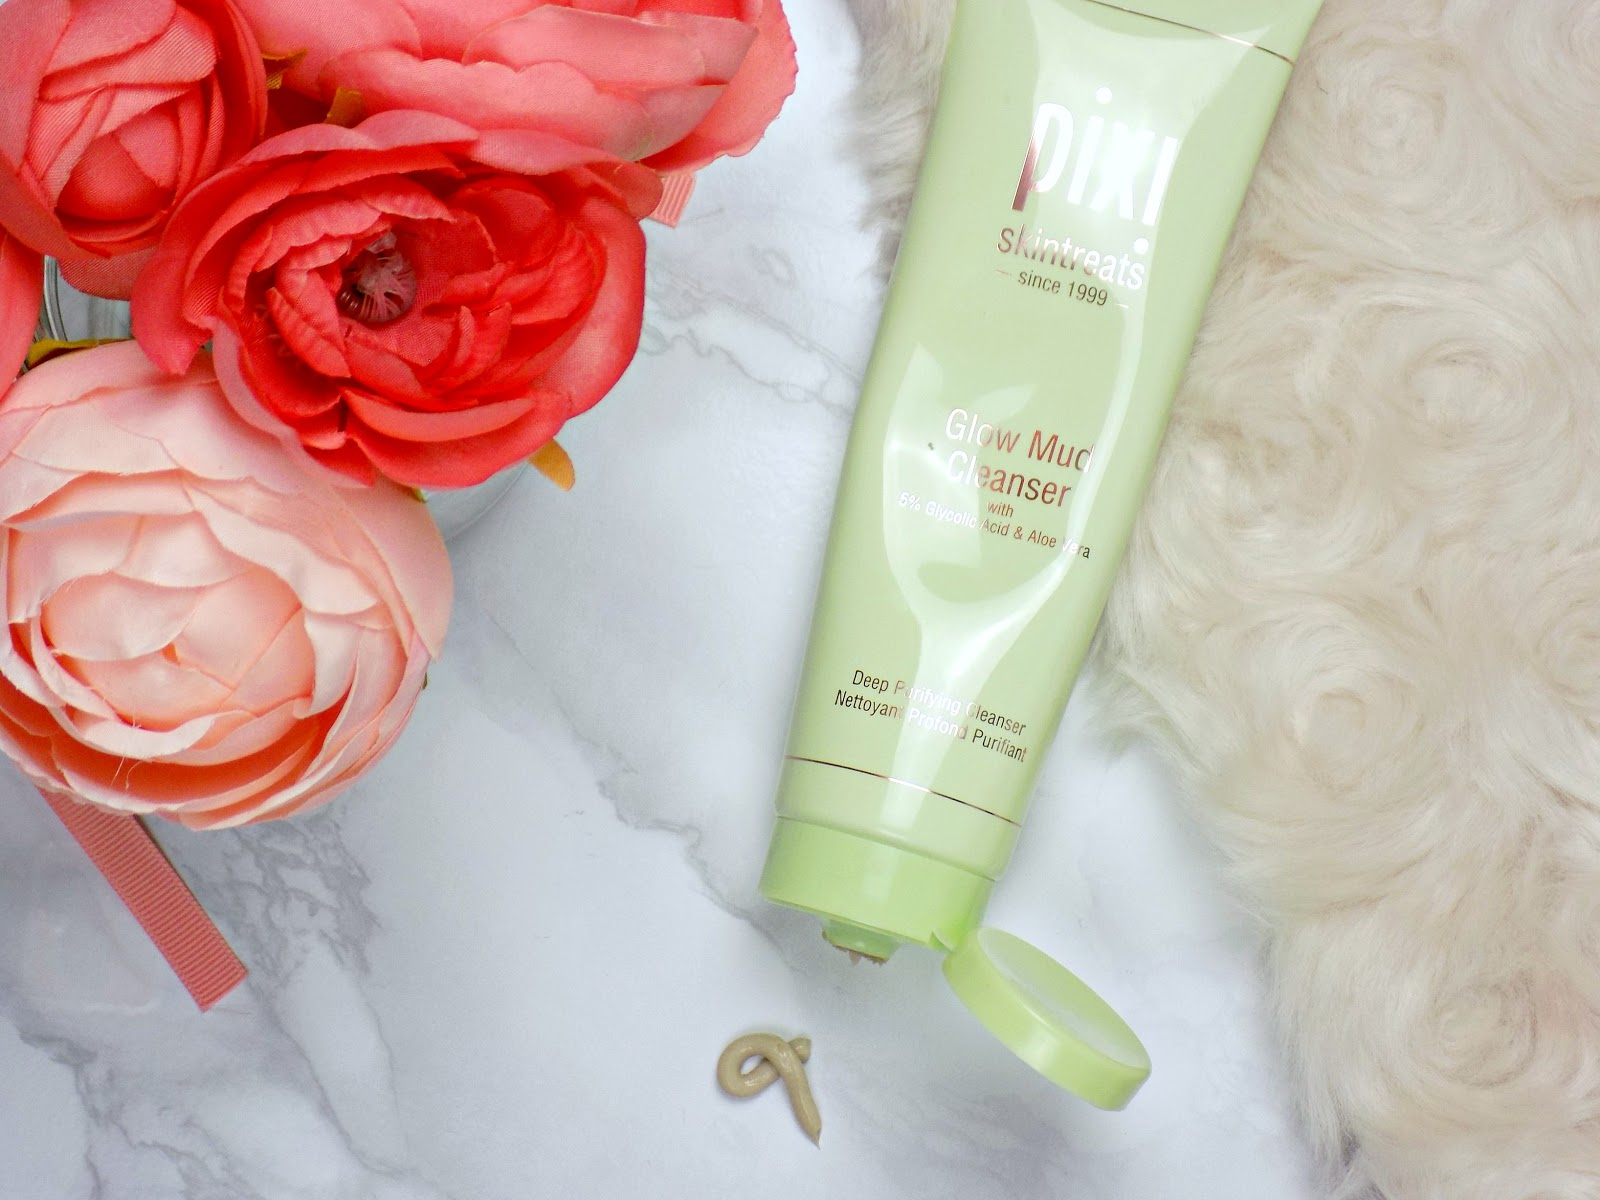 Pixi Glow Mud Cleanser